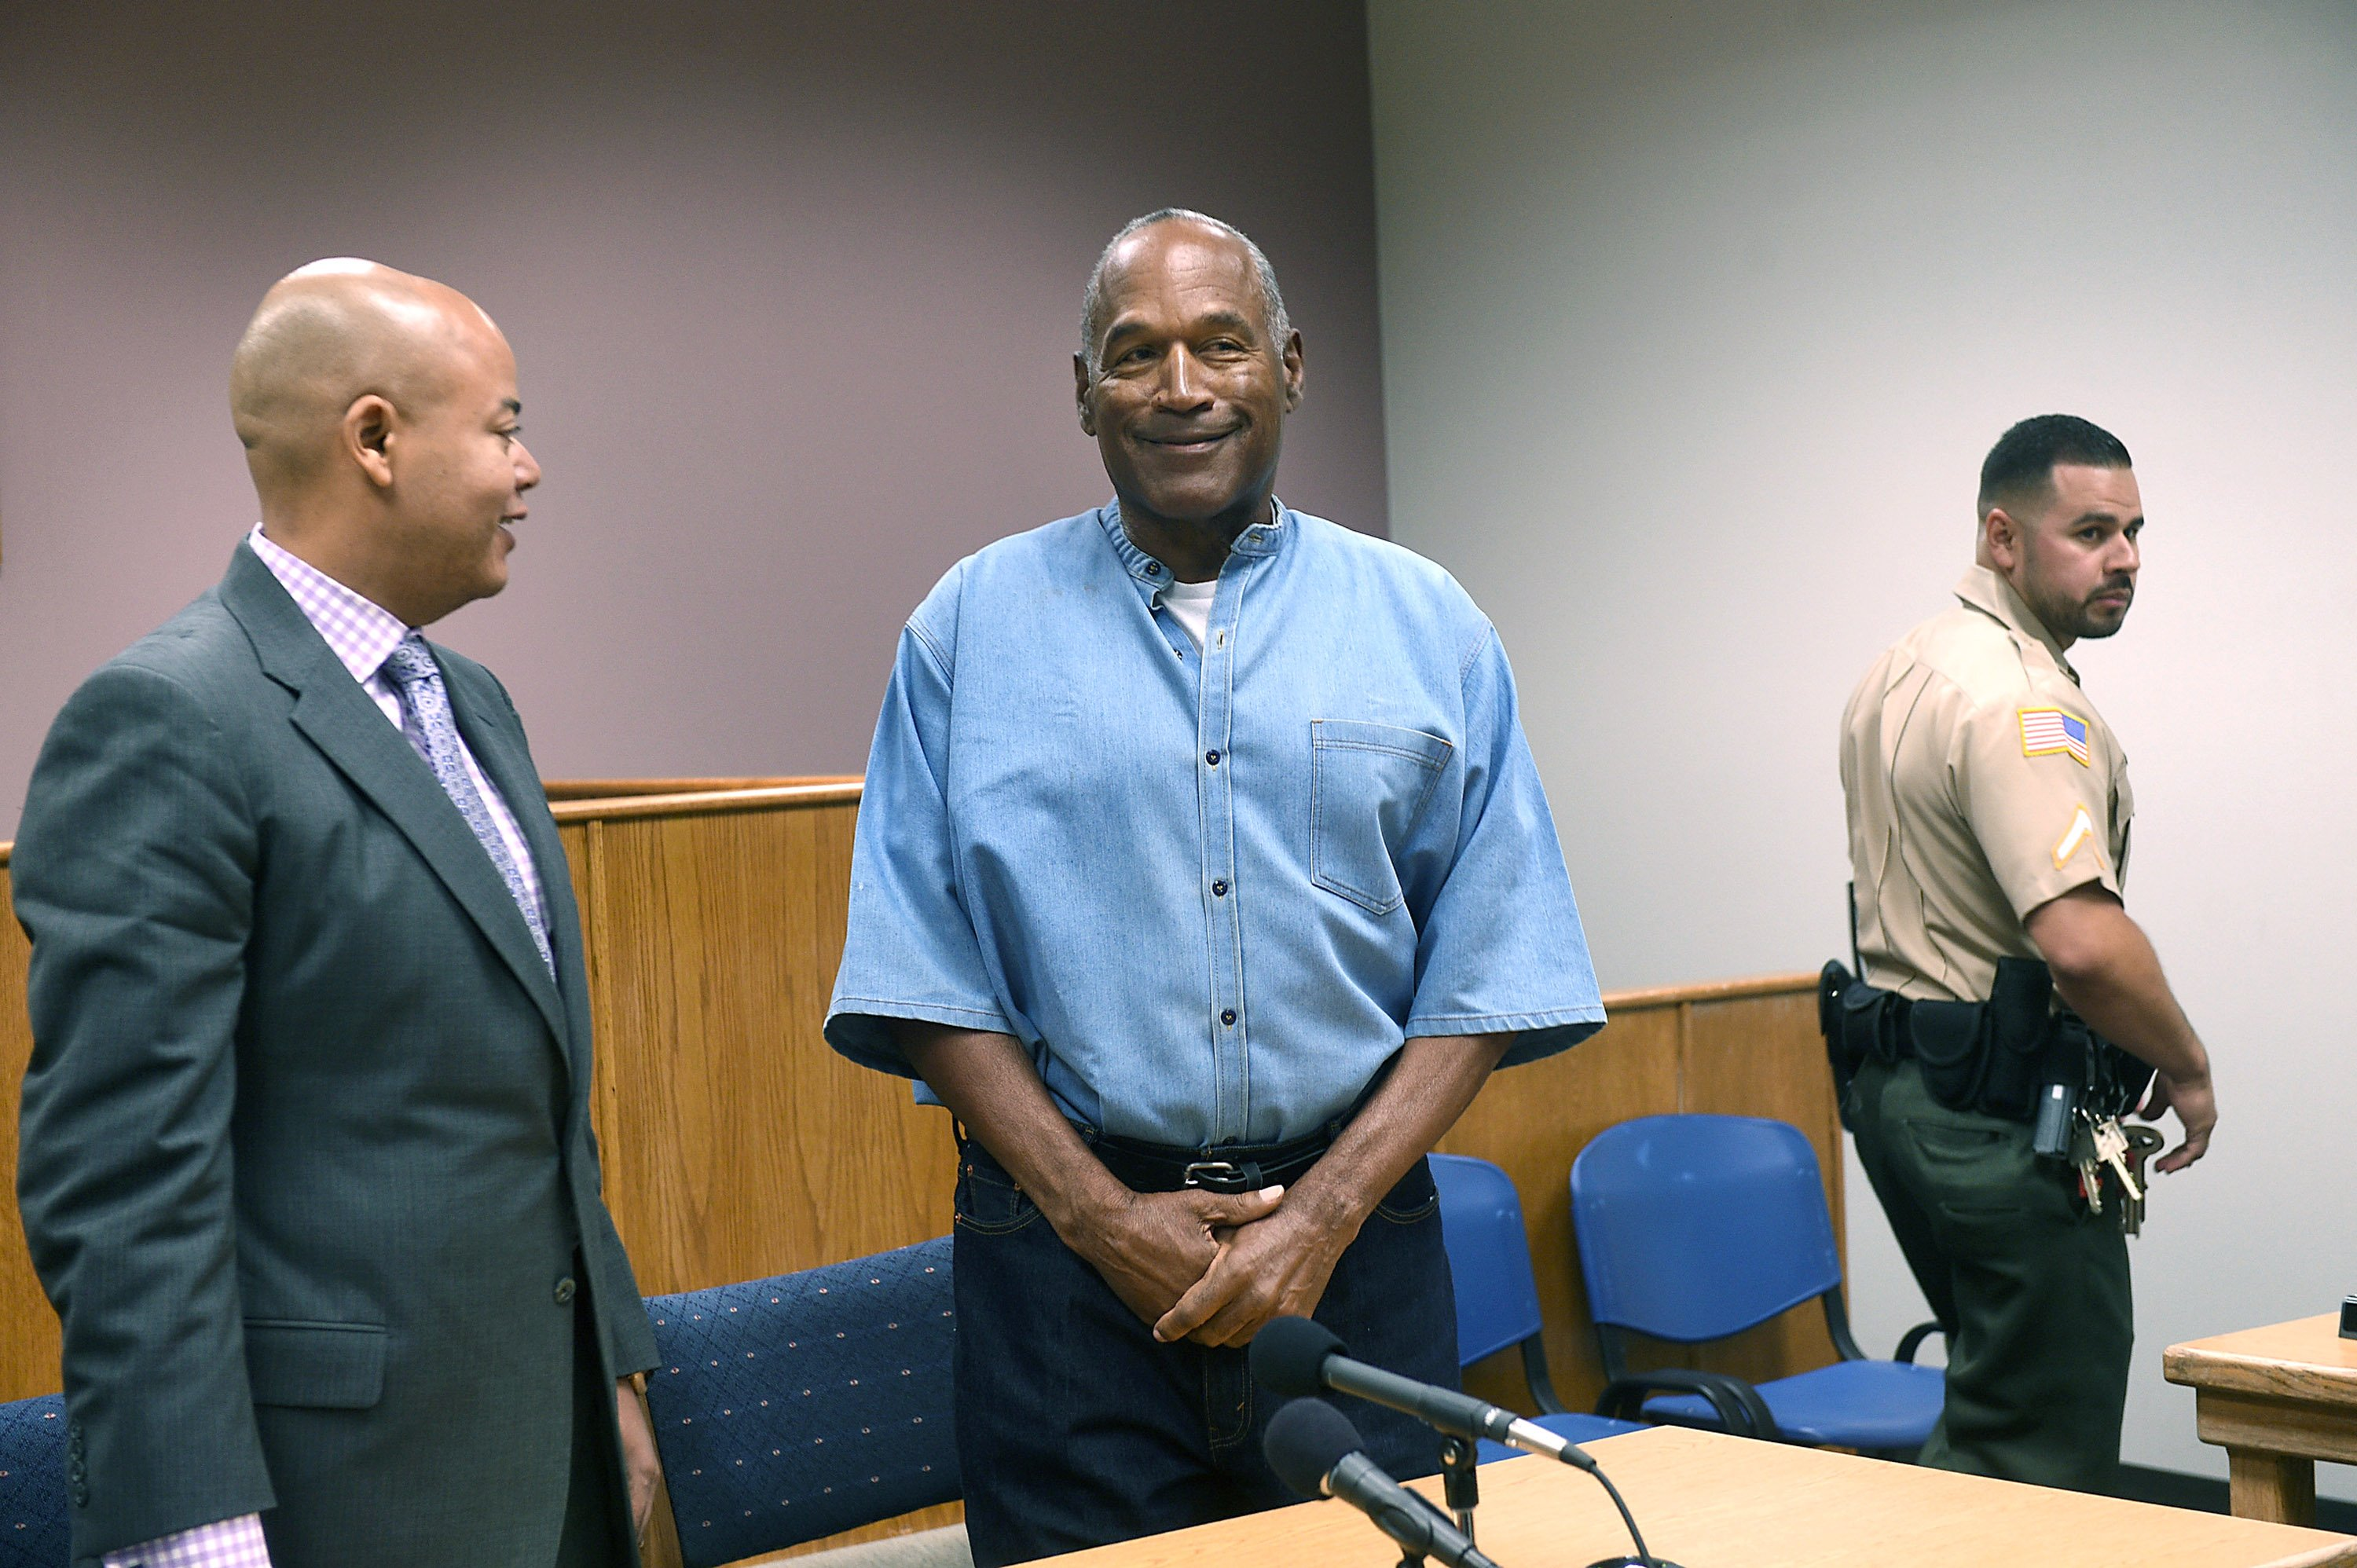 O.J. Simpson arrives for his parole hearing with his attorney Malcolm LaVergne at Lovelock Correctional Center July 20, 2017 in Lovelock, Nevada